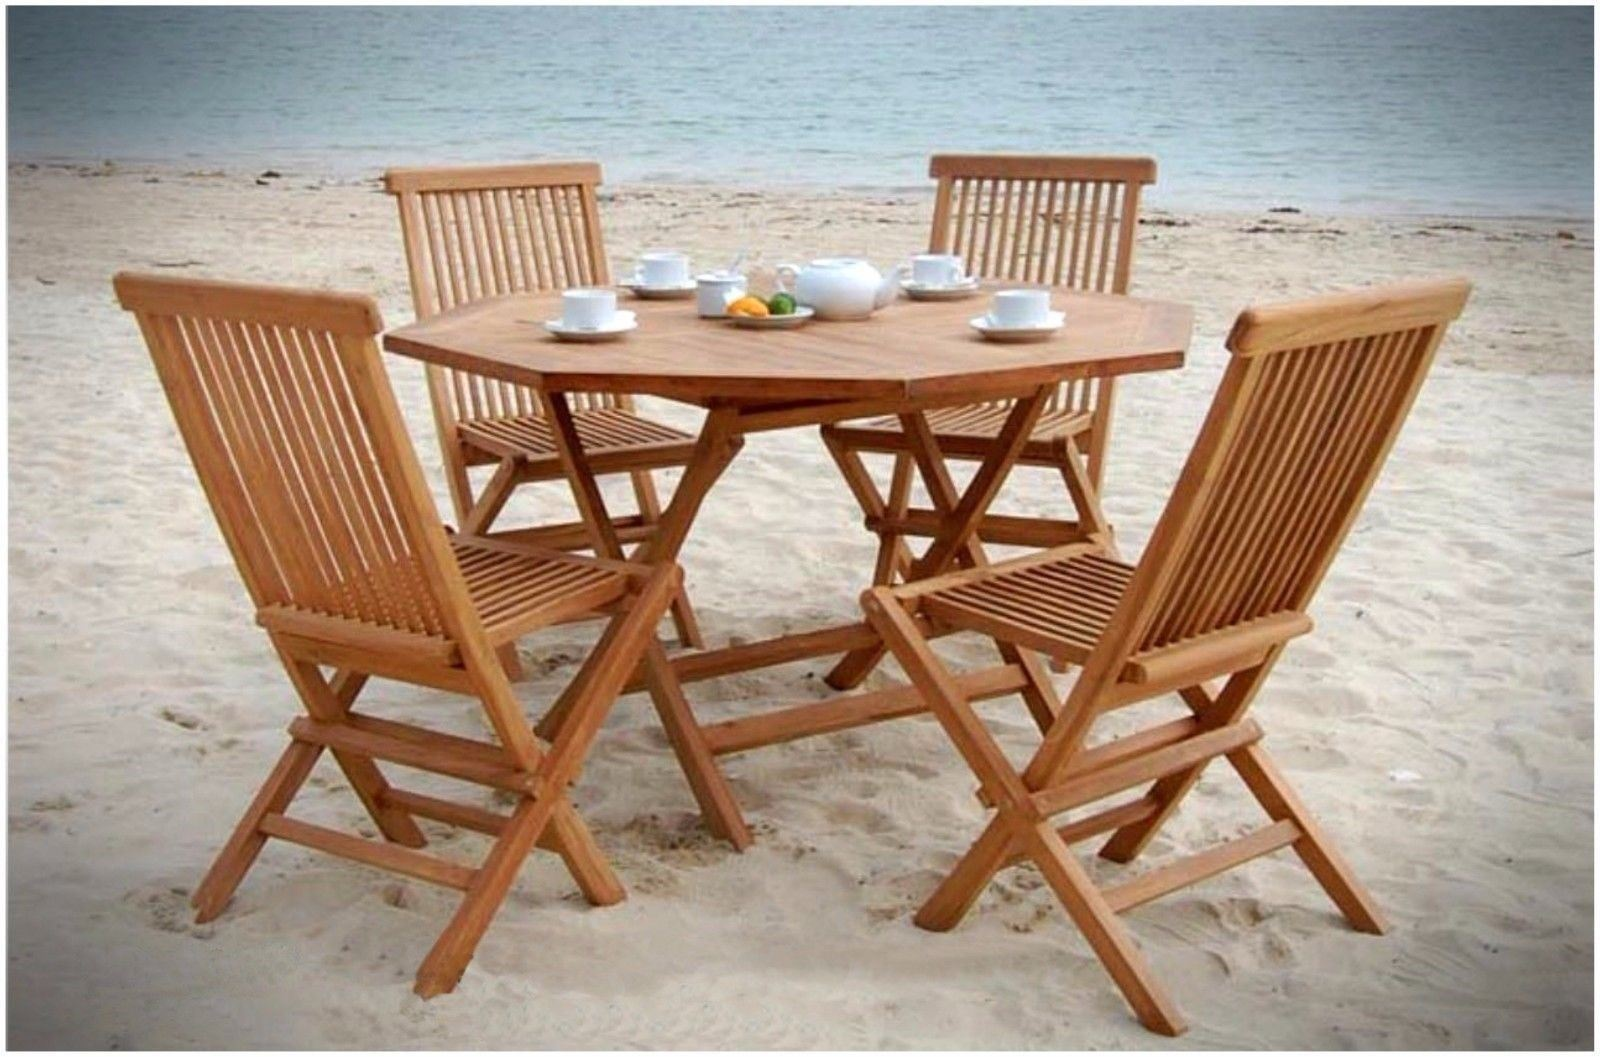 Details about Garden 120cm Solid Teak Wood Folding Table \u0026 4 Chairs Set Wooden Patio Furniture & Garden 120cm Solid Teak Wood Folding Table \u0026 4 Chairs Set Wooden ...